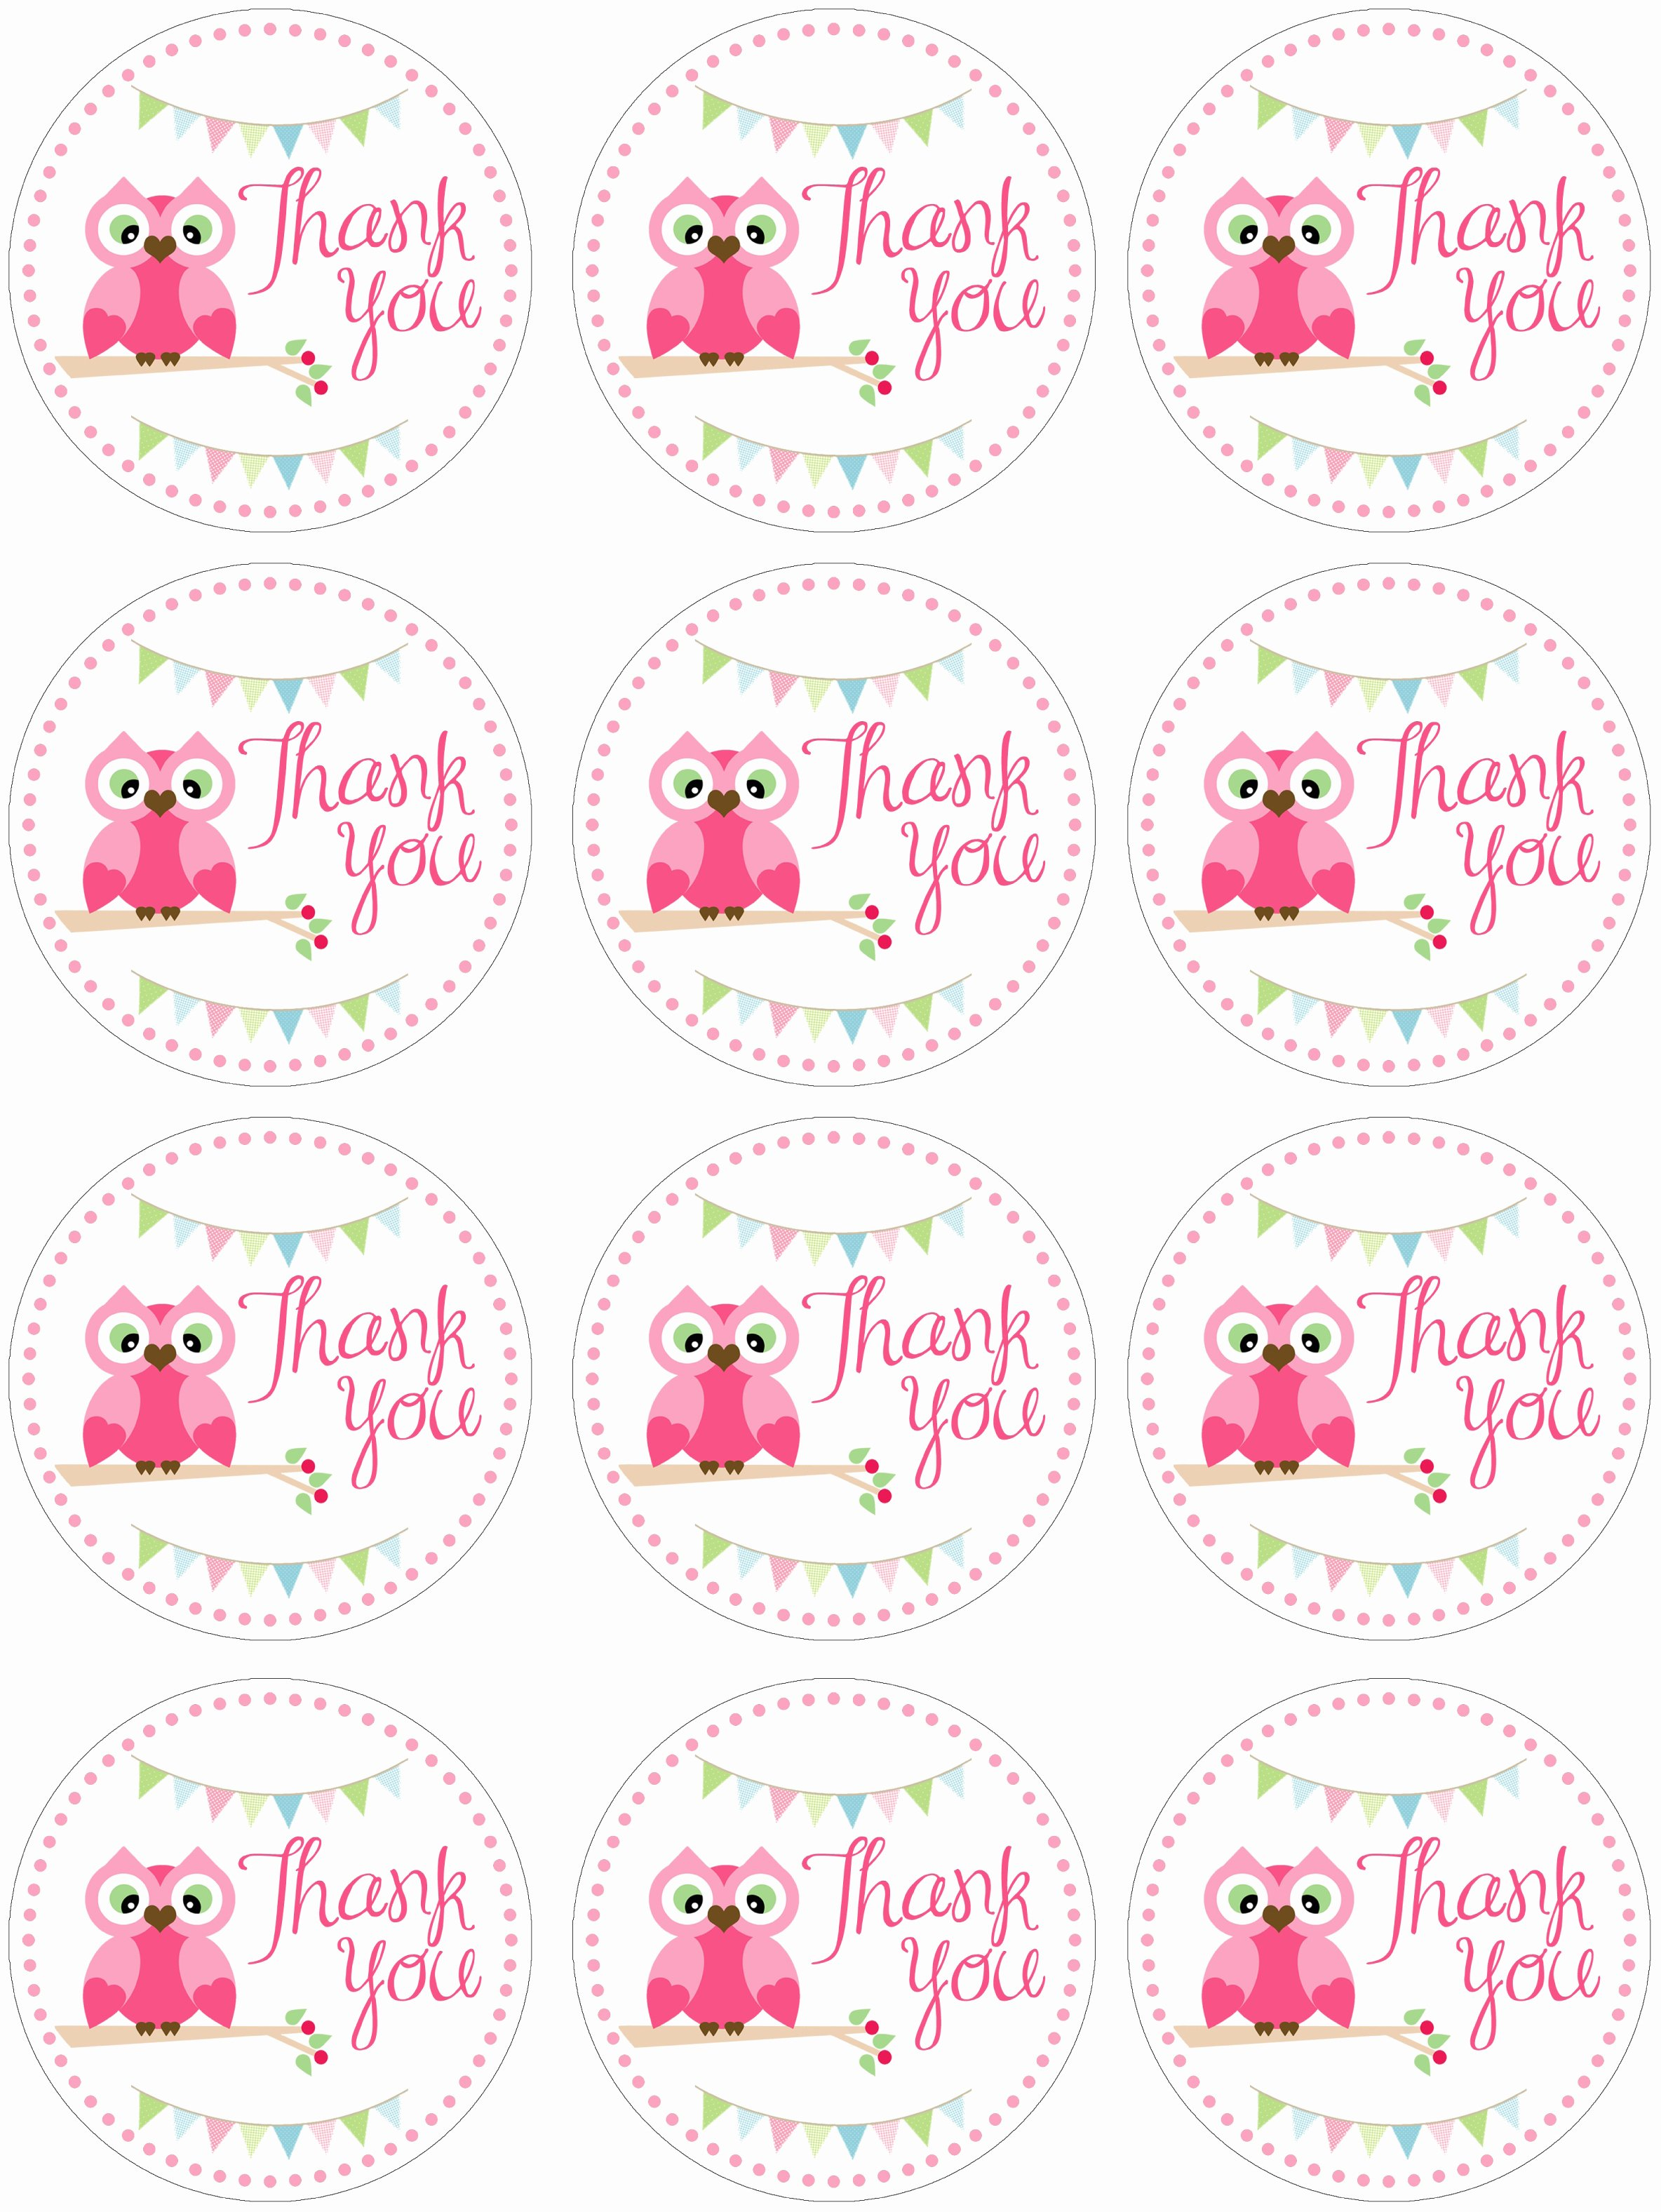 photograph regarding Free Printable Favor Tags Template identified as No cost Printable Reward Tag Template Latter Illustration Template